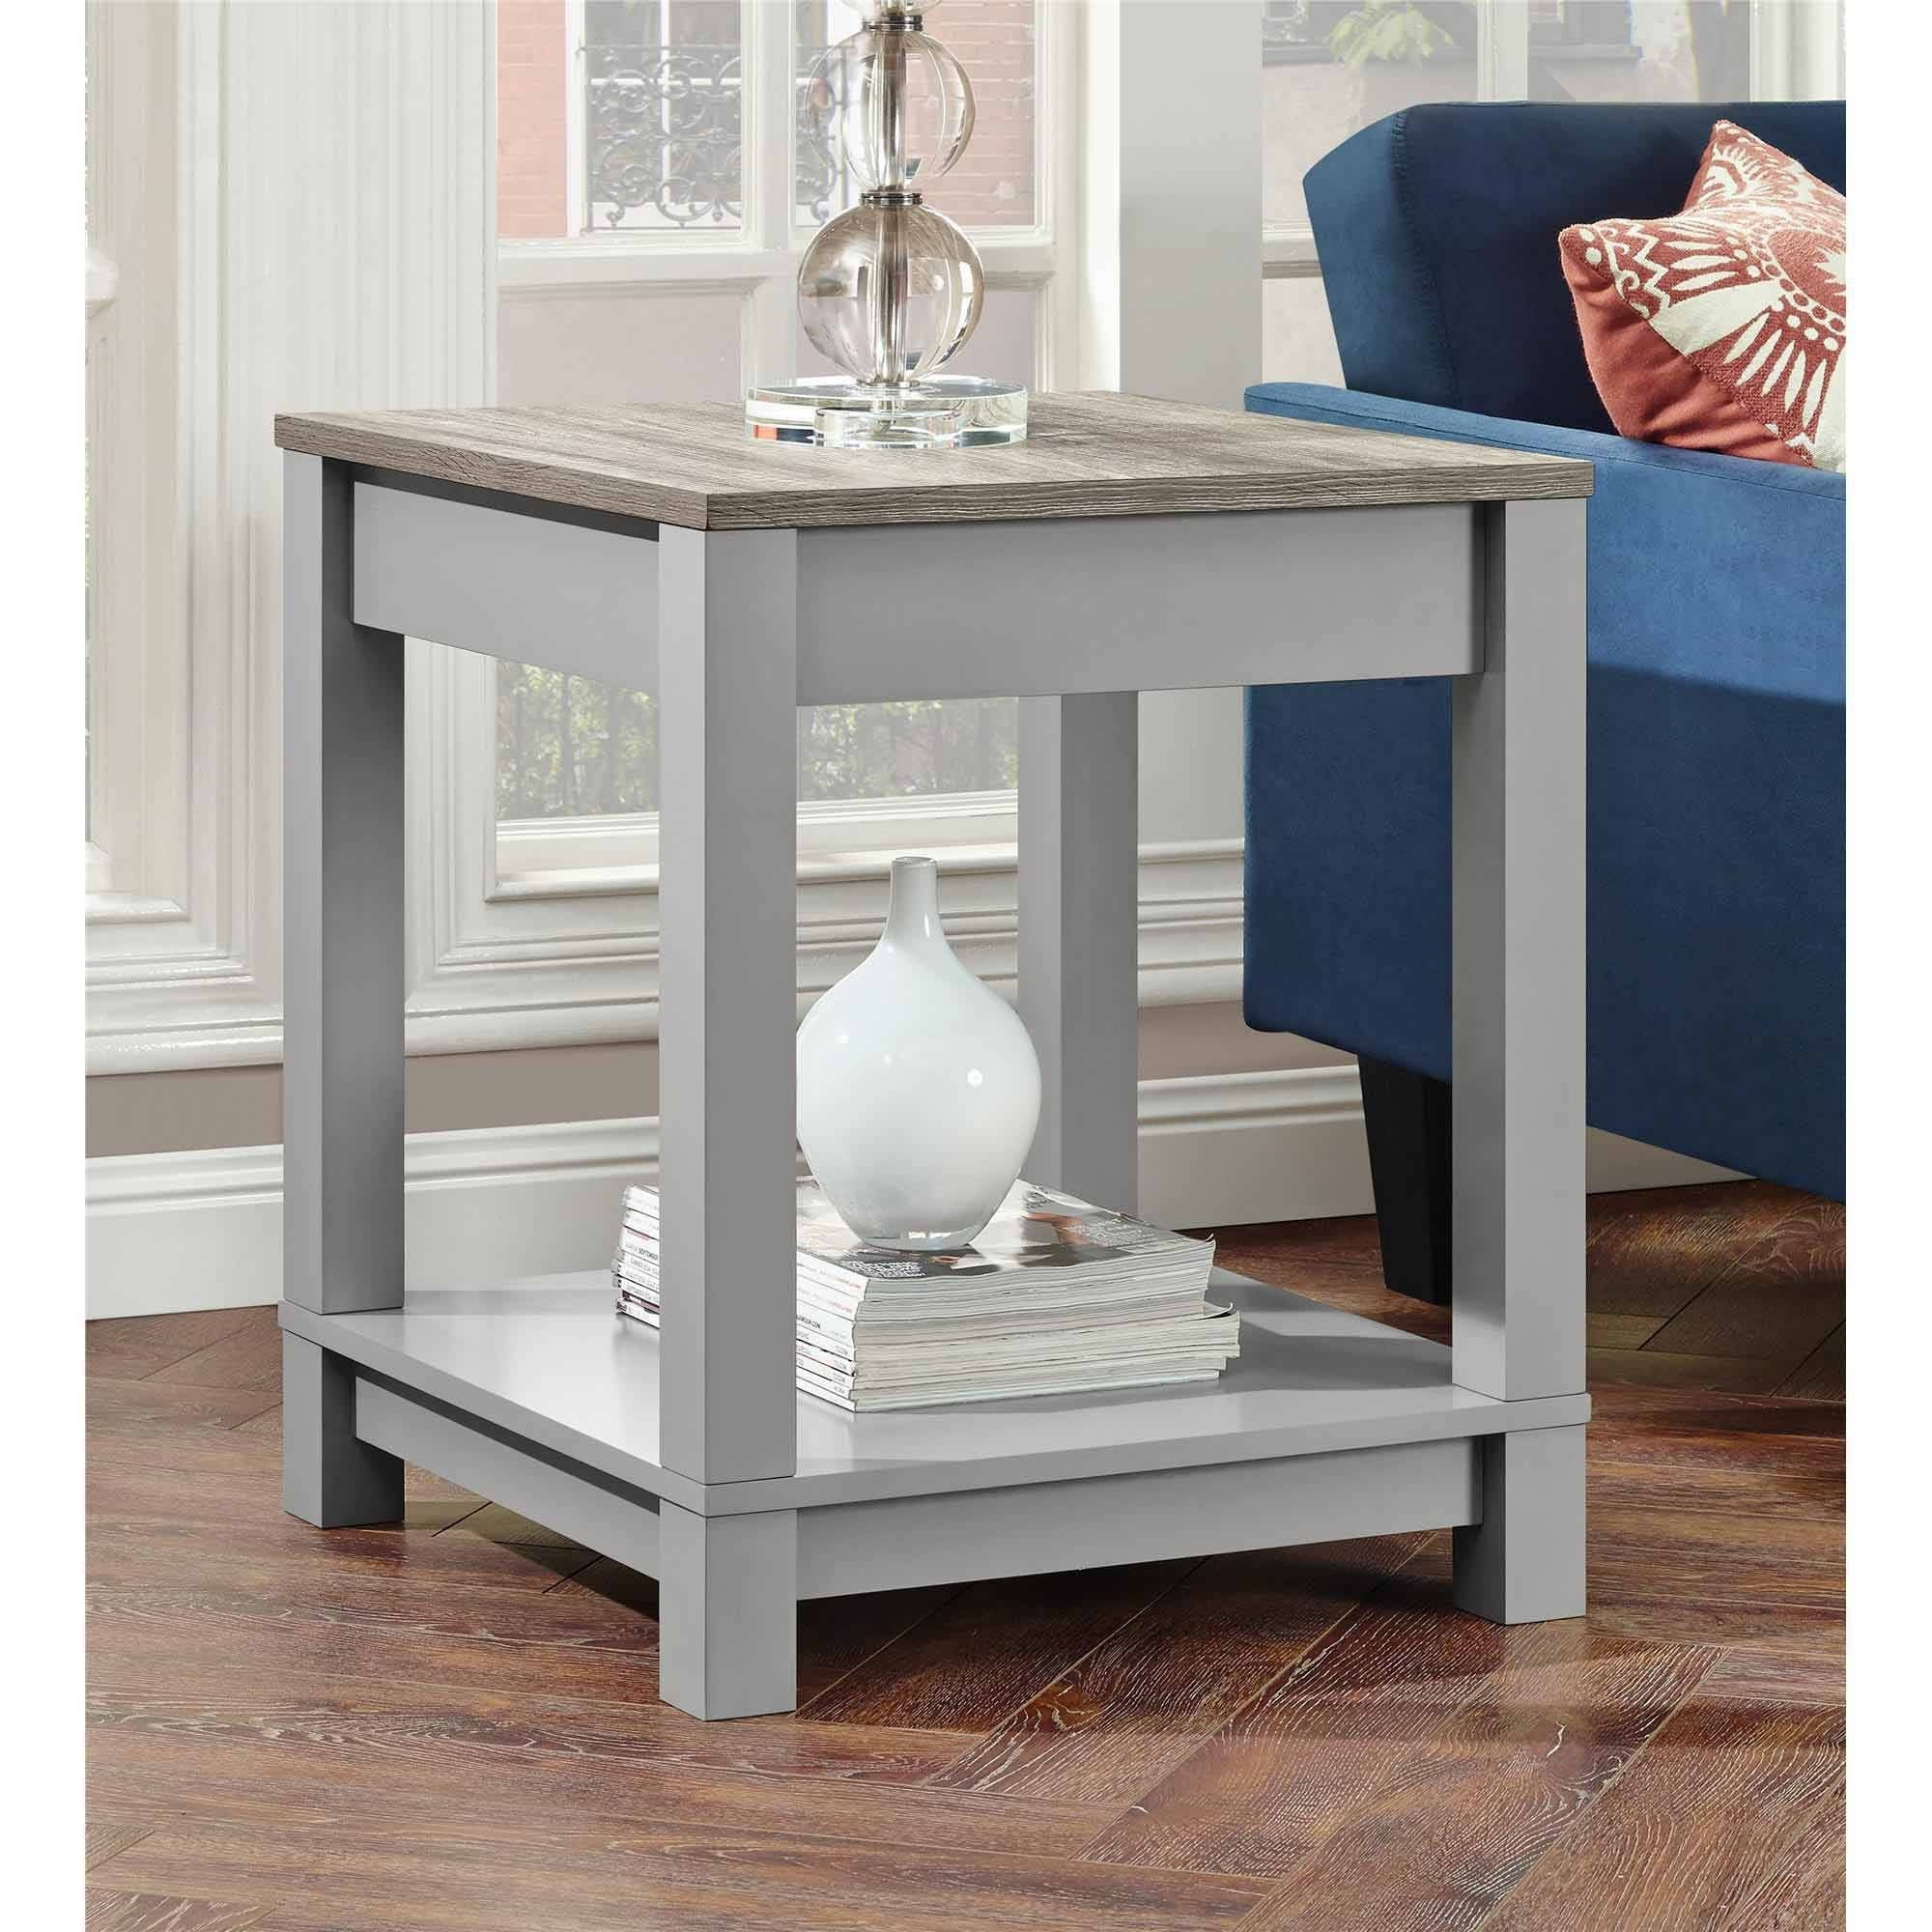 spectacular better homes and garden rustic end table gardens accent gray student computer desk little with drawers nautical lamp shades lamps rhinestone shade large white